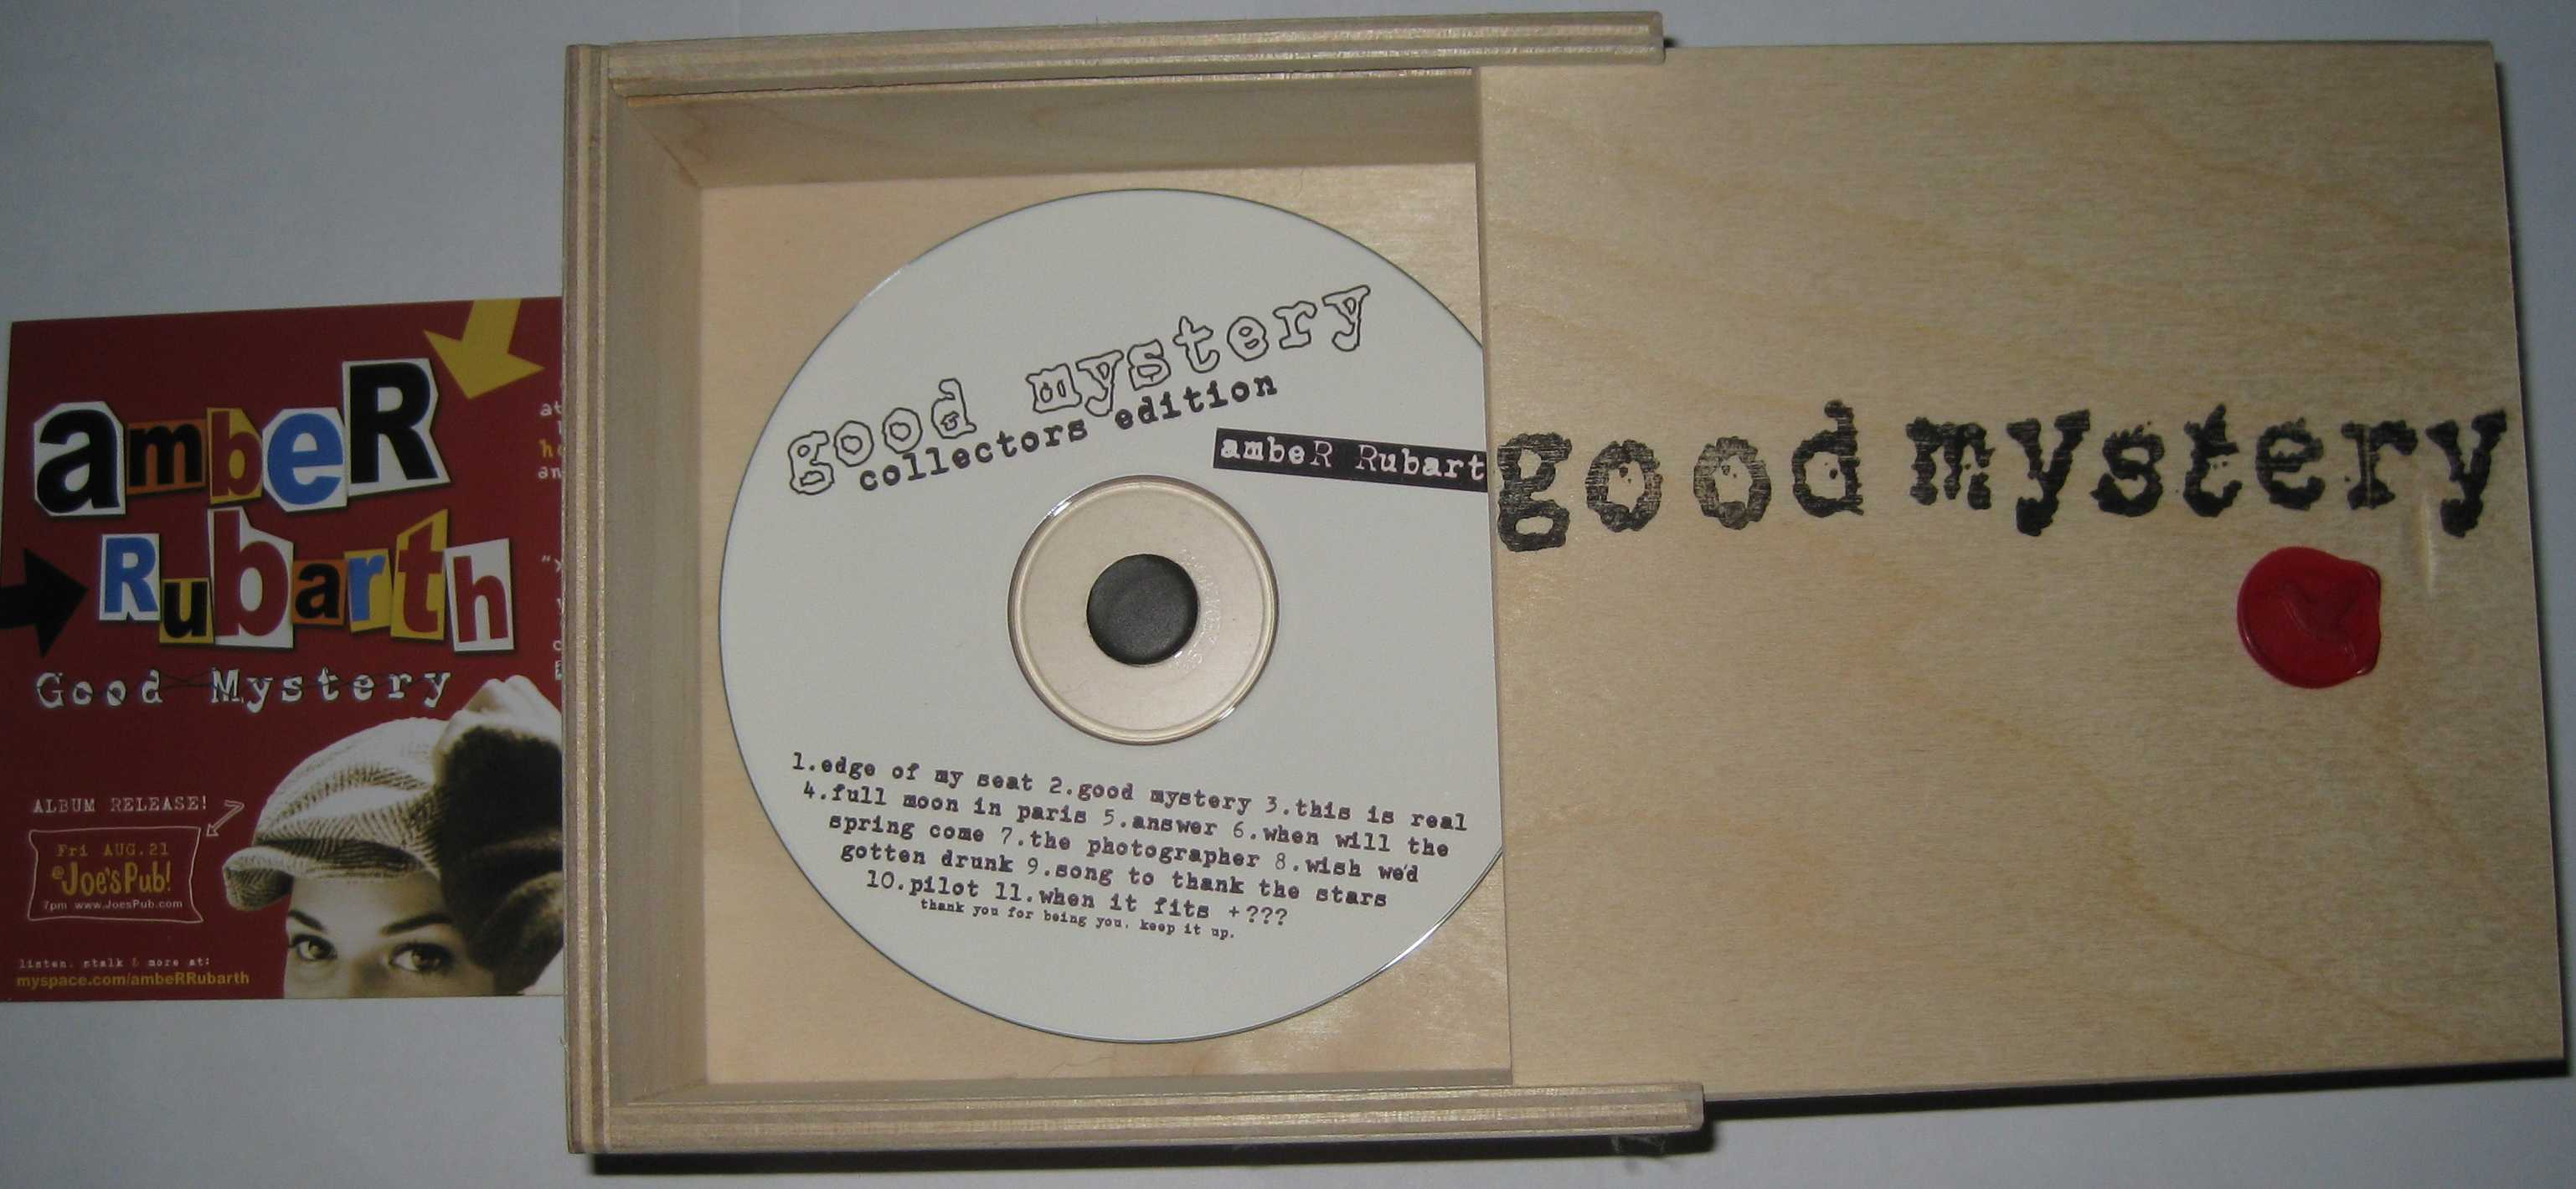 Amber Rubarth Good Mystery Collectors Edition CD Package